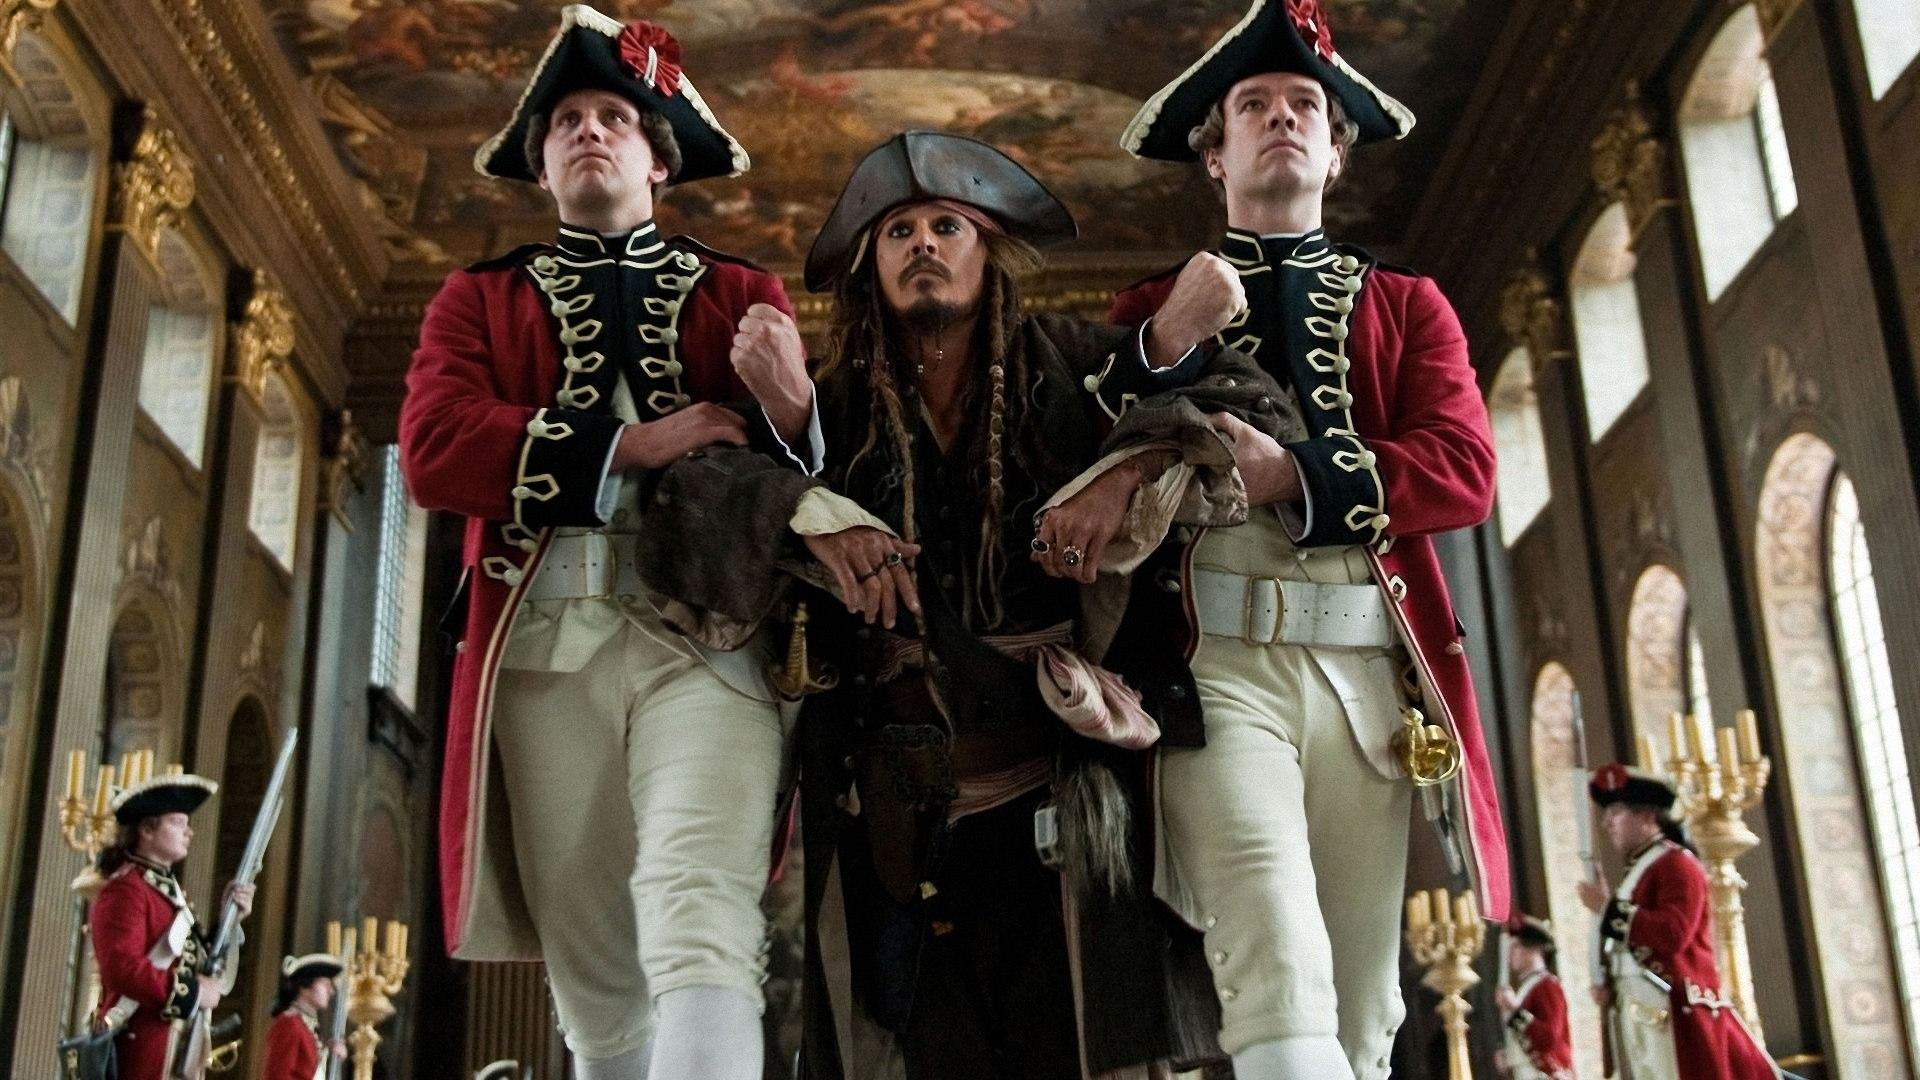 pirates_of_the_caribbean_4_48547-1920x1080.jpg